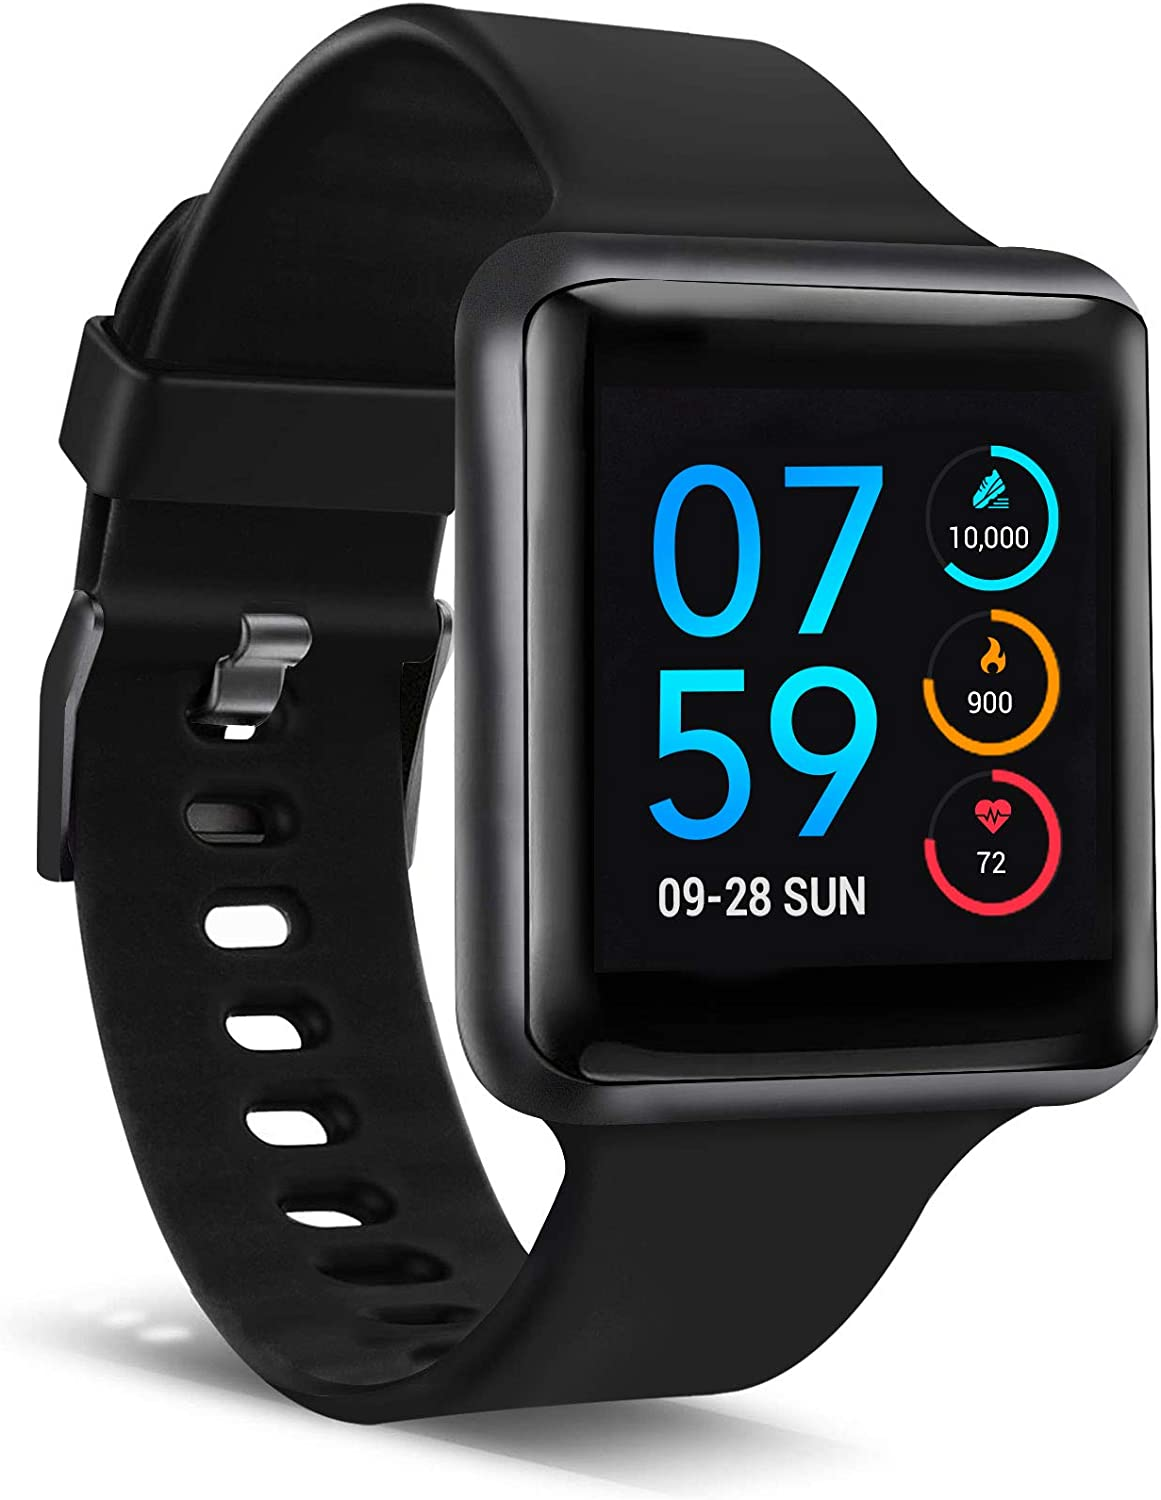 iTouch Air Special Edition Smartwatch for Fitness, iPhone and Android Compatible, Pedometer, Walking and Running Tracker for Women and Men (Small/Medium)